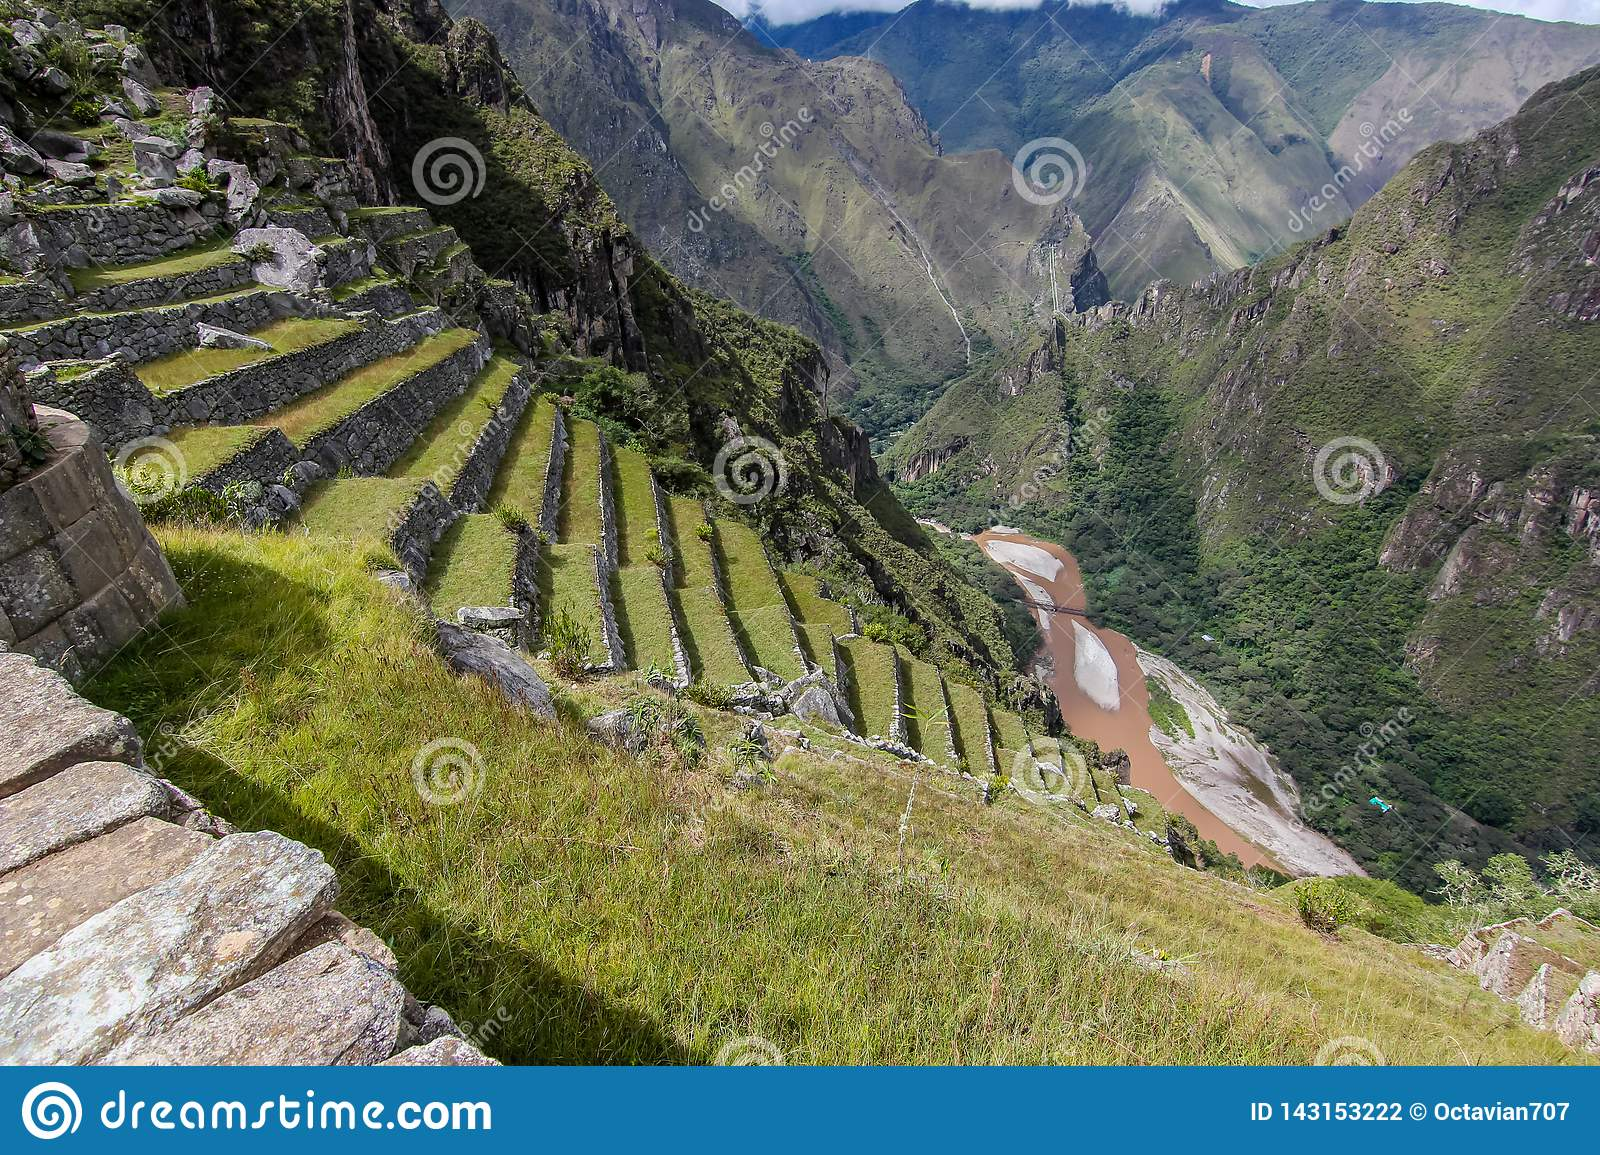 Terraces and river valey near Machu Picchu